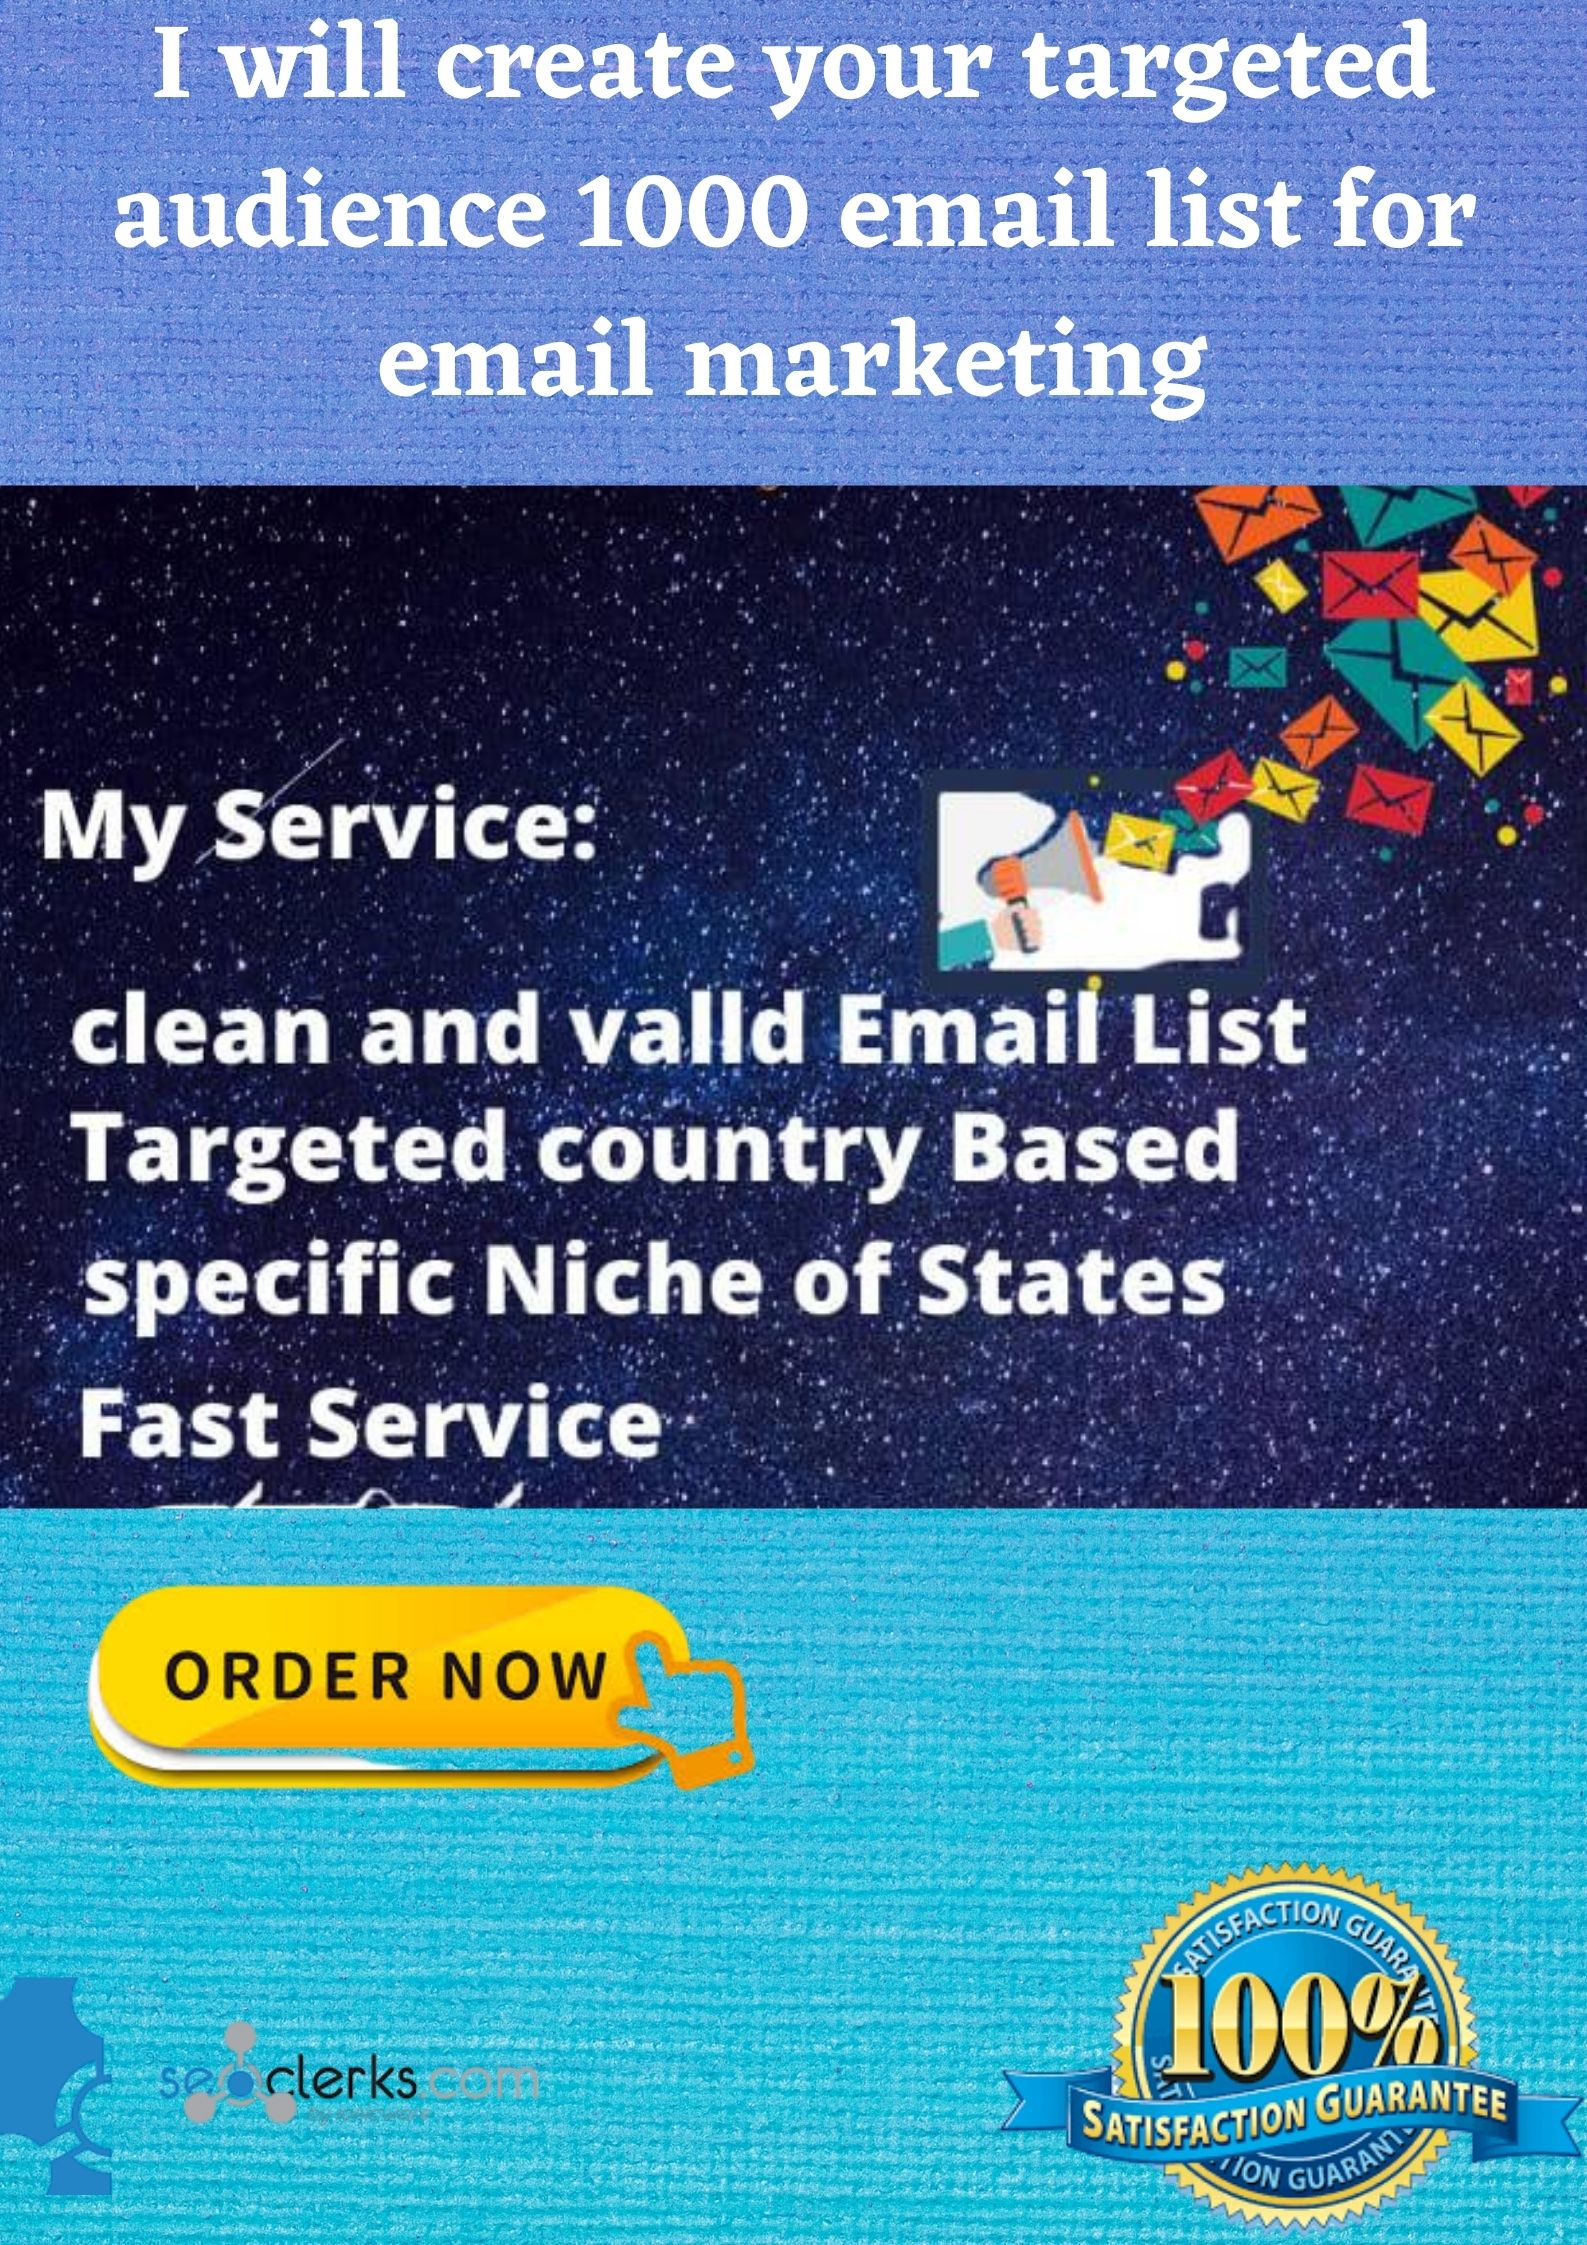 I will create your targeted niche 1000 email list for email marketing